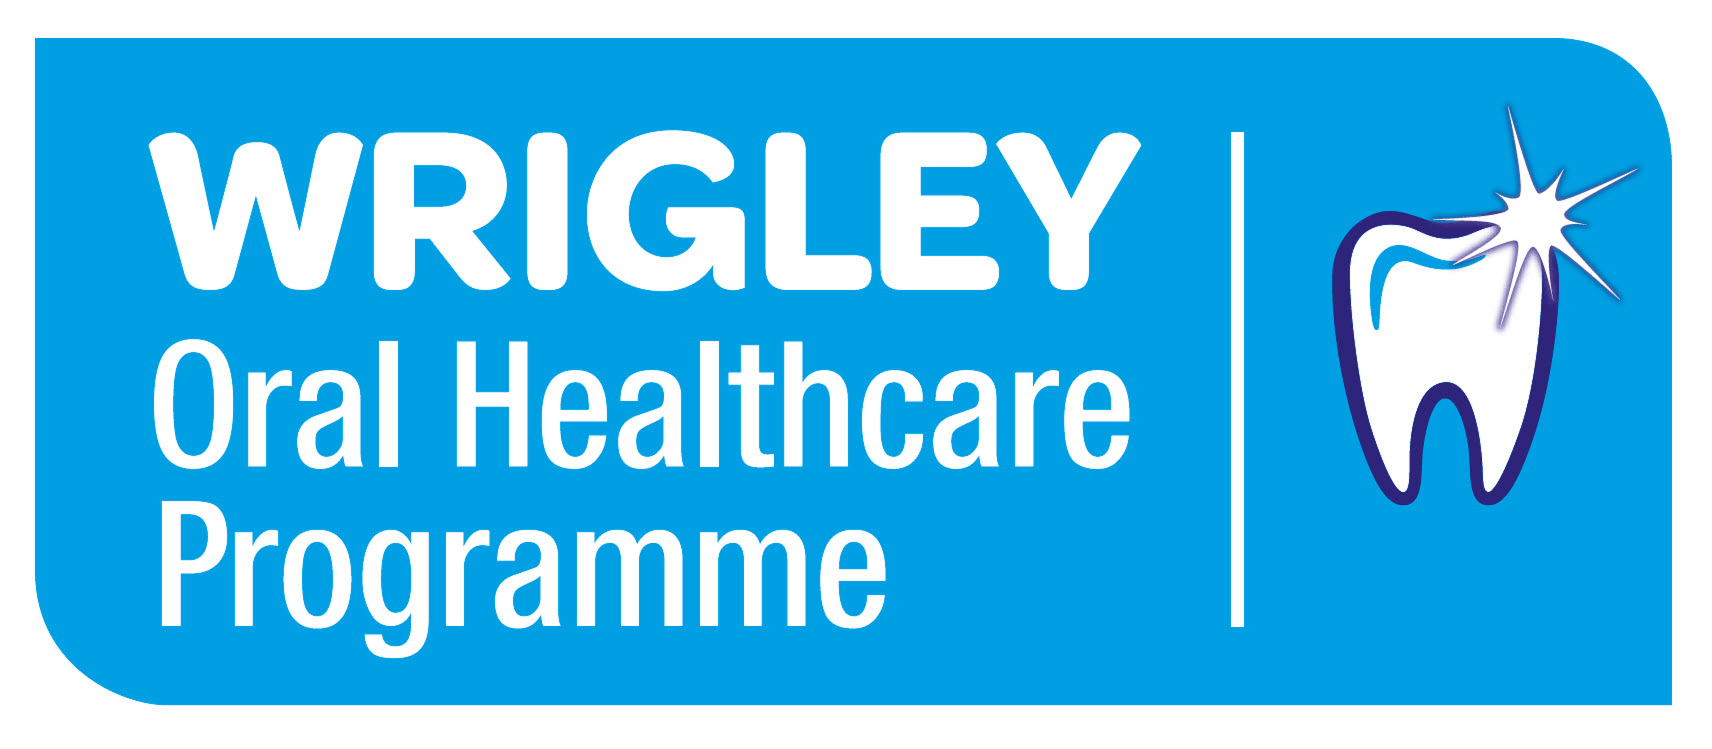 Wrigley Oral Healthcare Programme Sponsor of the British Dental Conference and Dentistry Show